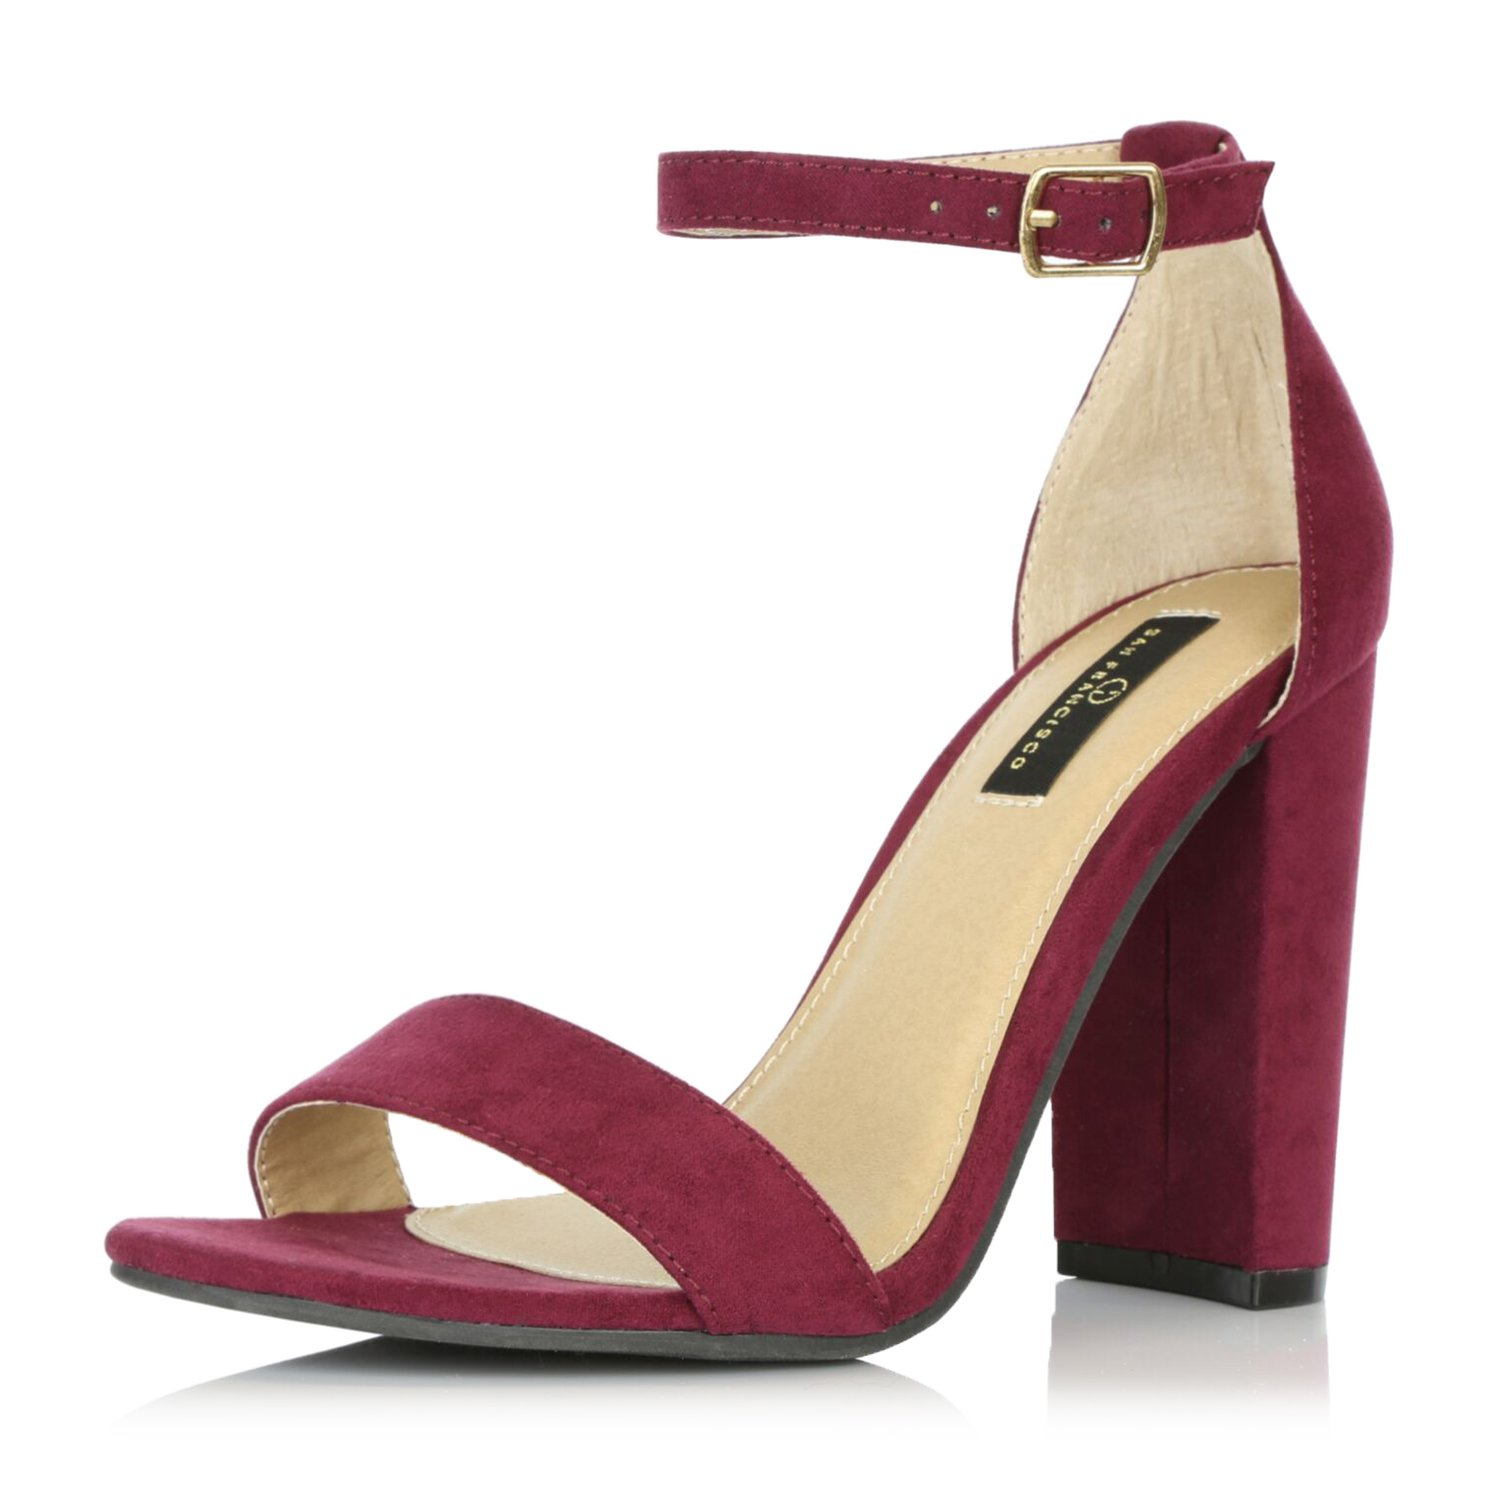 DailyShoes Women's Chunky Stacked Heel Sandal Open Toe Classic Wedding Pumps with Buckle Ankle Strap Casual Sandals Shoes, Wine Suede, 7 B(M) US